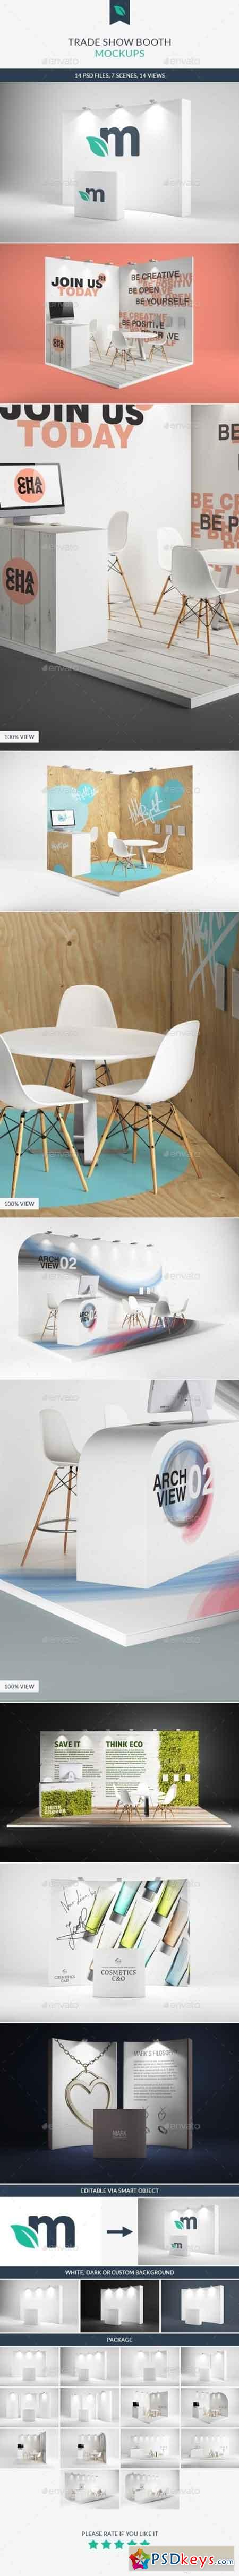 Booth » Free Download Photoshop Vector Stock image Via Torrent